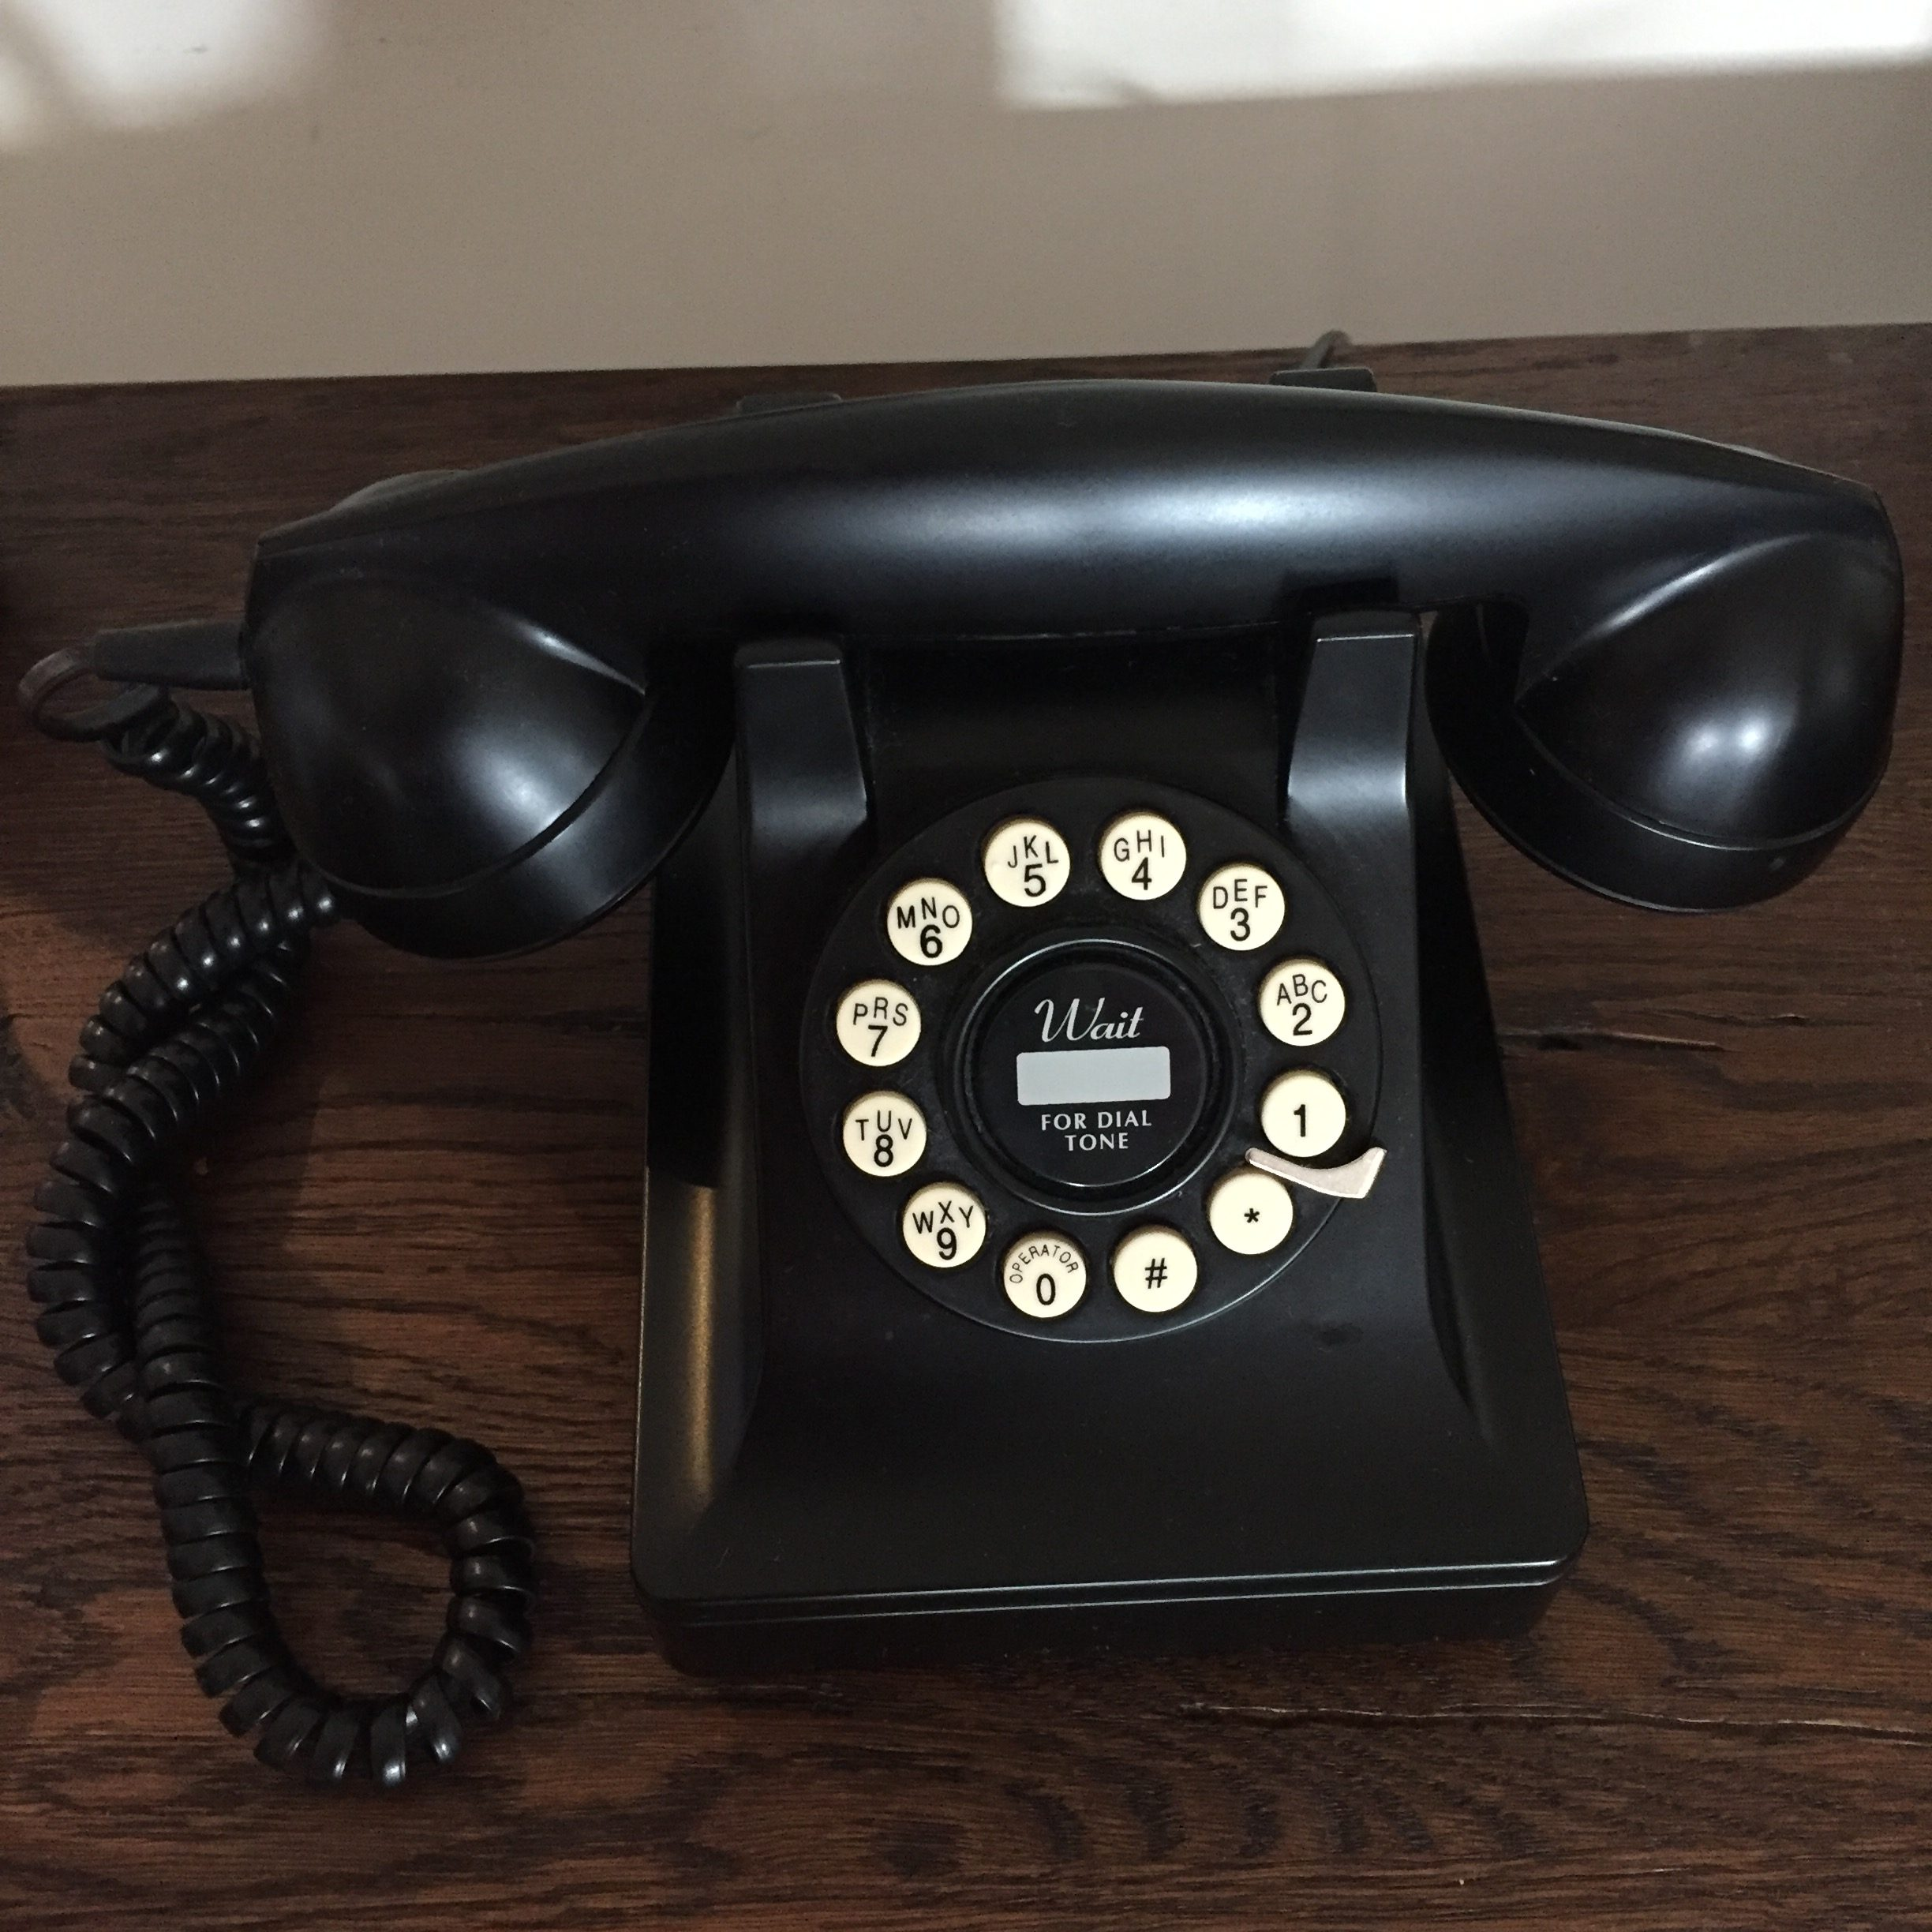 telephone in superior room at alexander pope hotel